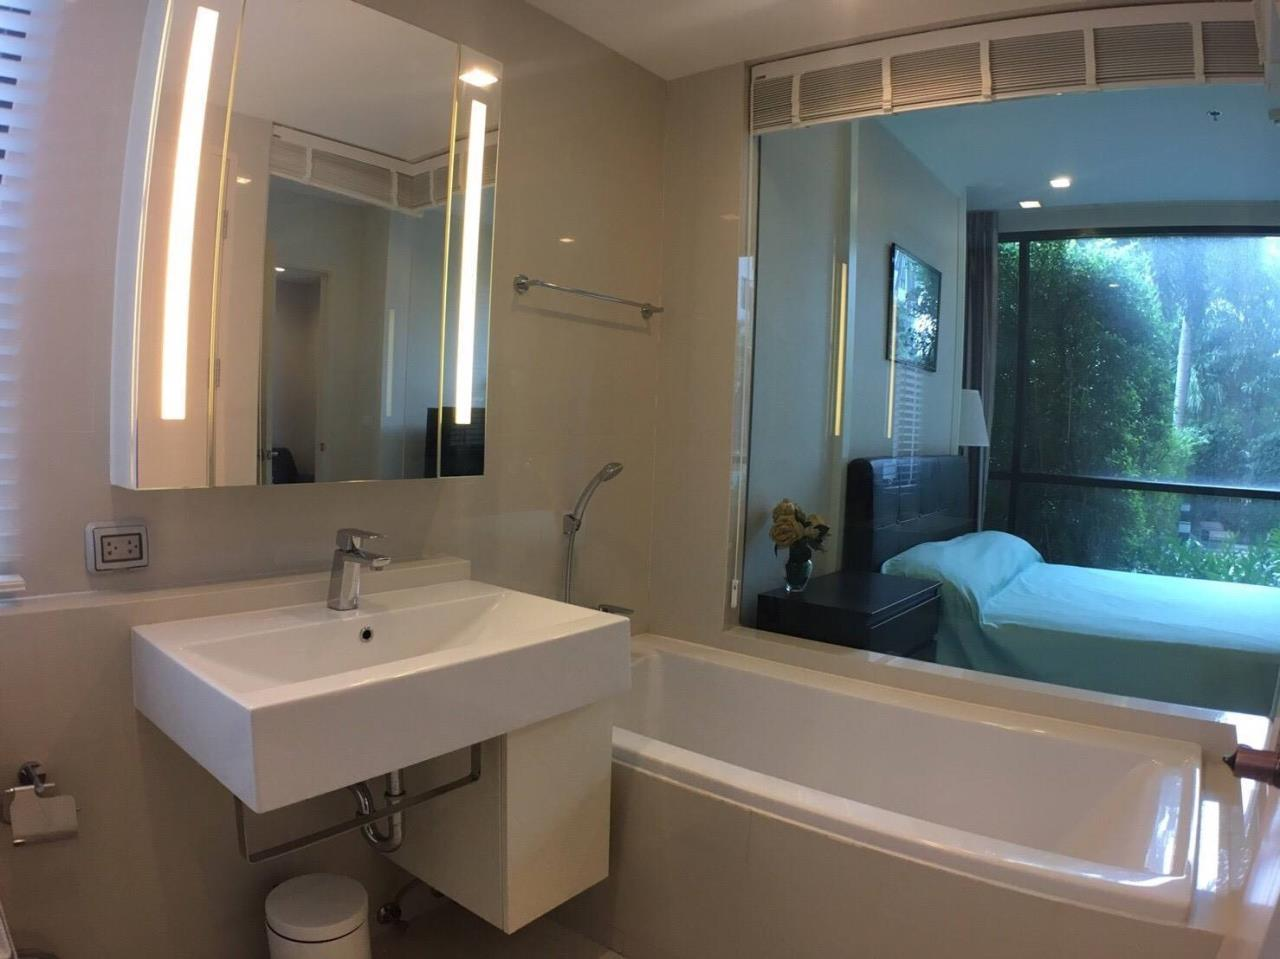 SALA ESTATE Agency's Q HOUSE SUKHUMVIT 79 – BTS ON NUT, 2 Bedrooms 2 Bathrooms, Fully Furnished, City View 10